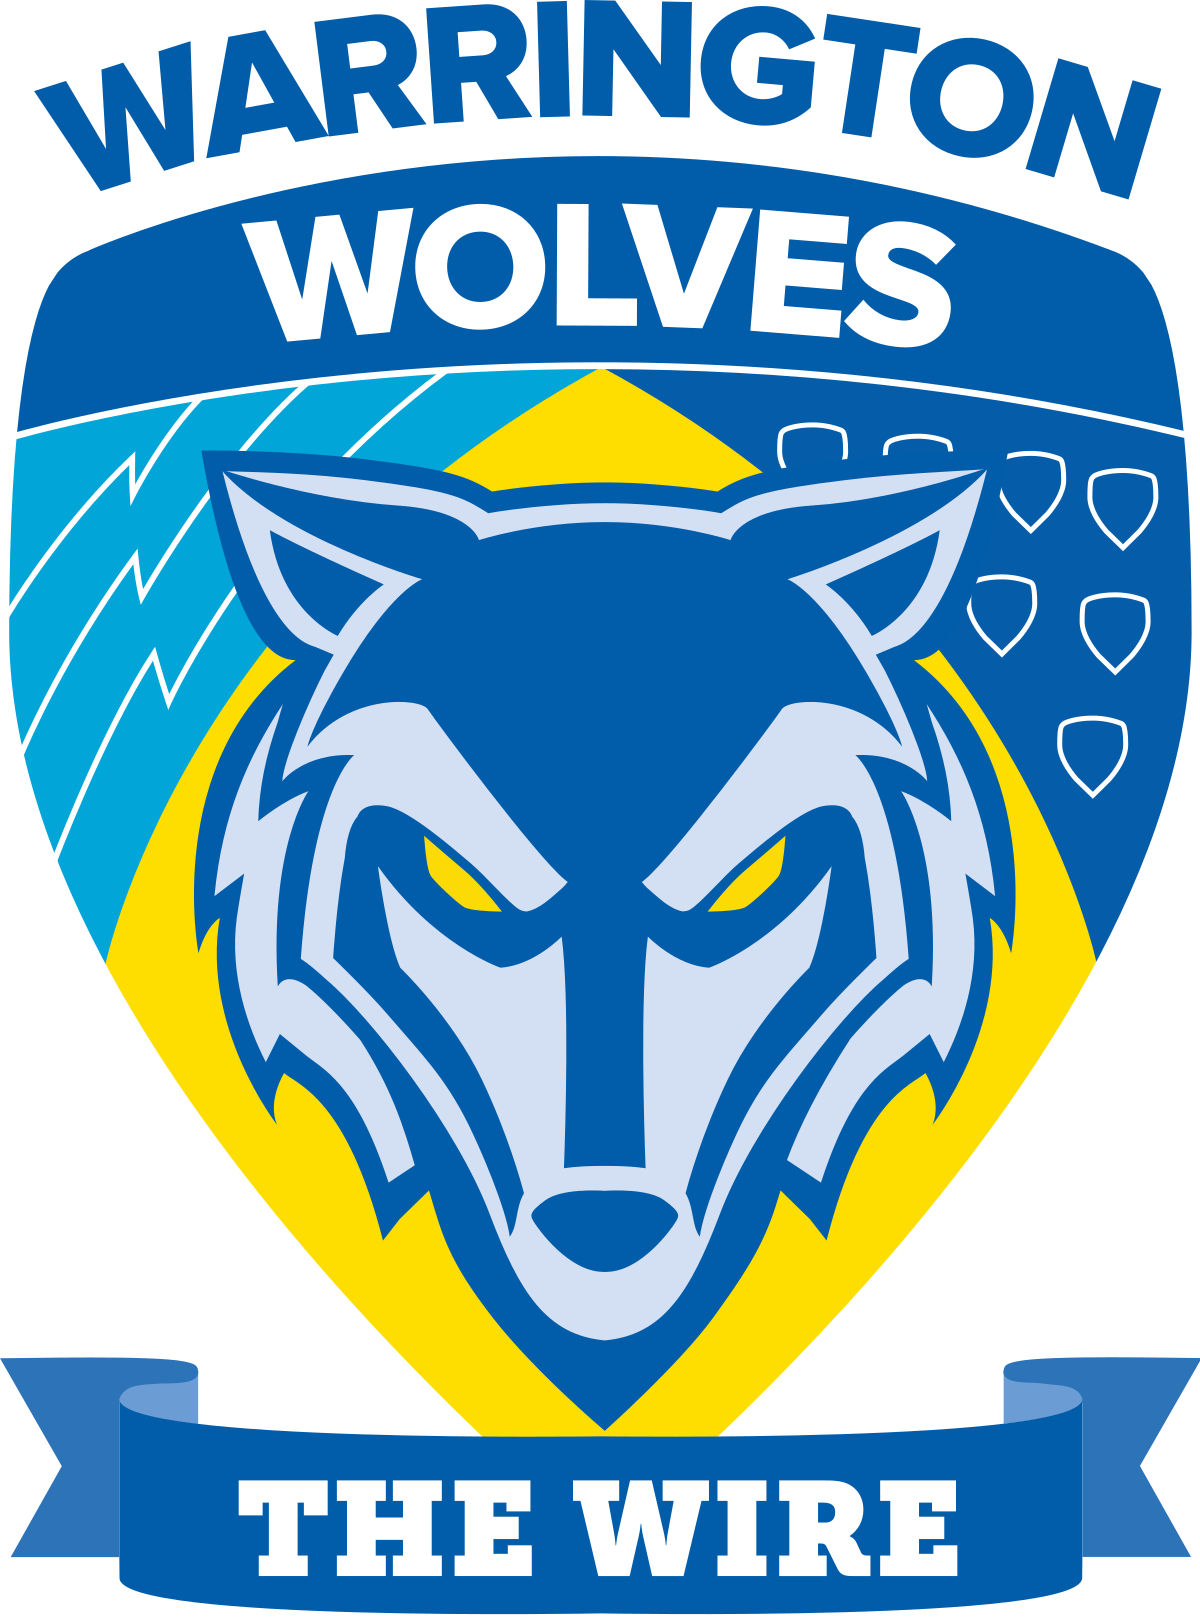 Places Warrington Wolves